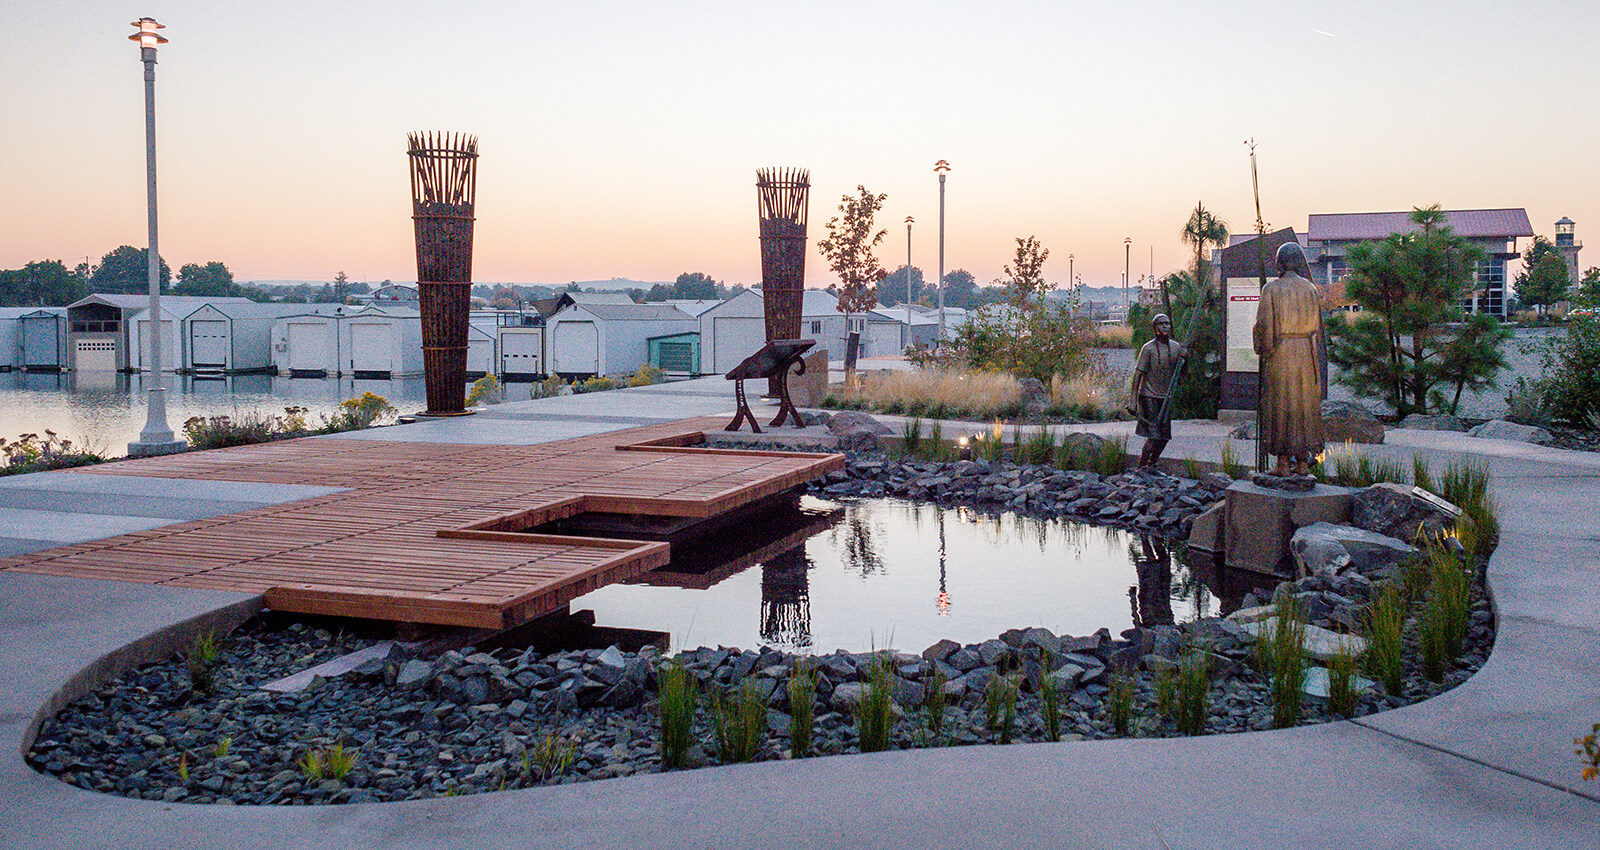 The Gatherng Place art installation at dusk.